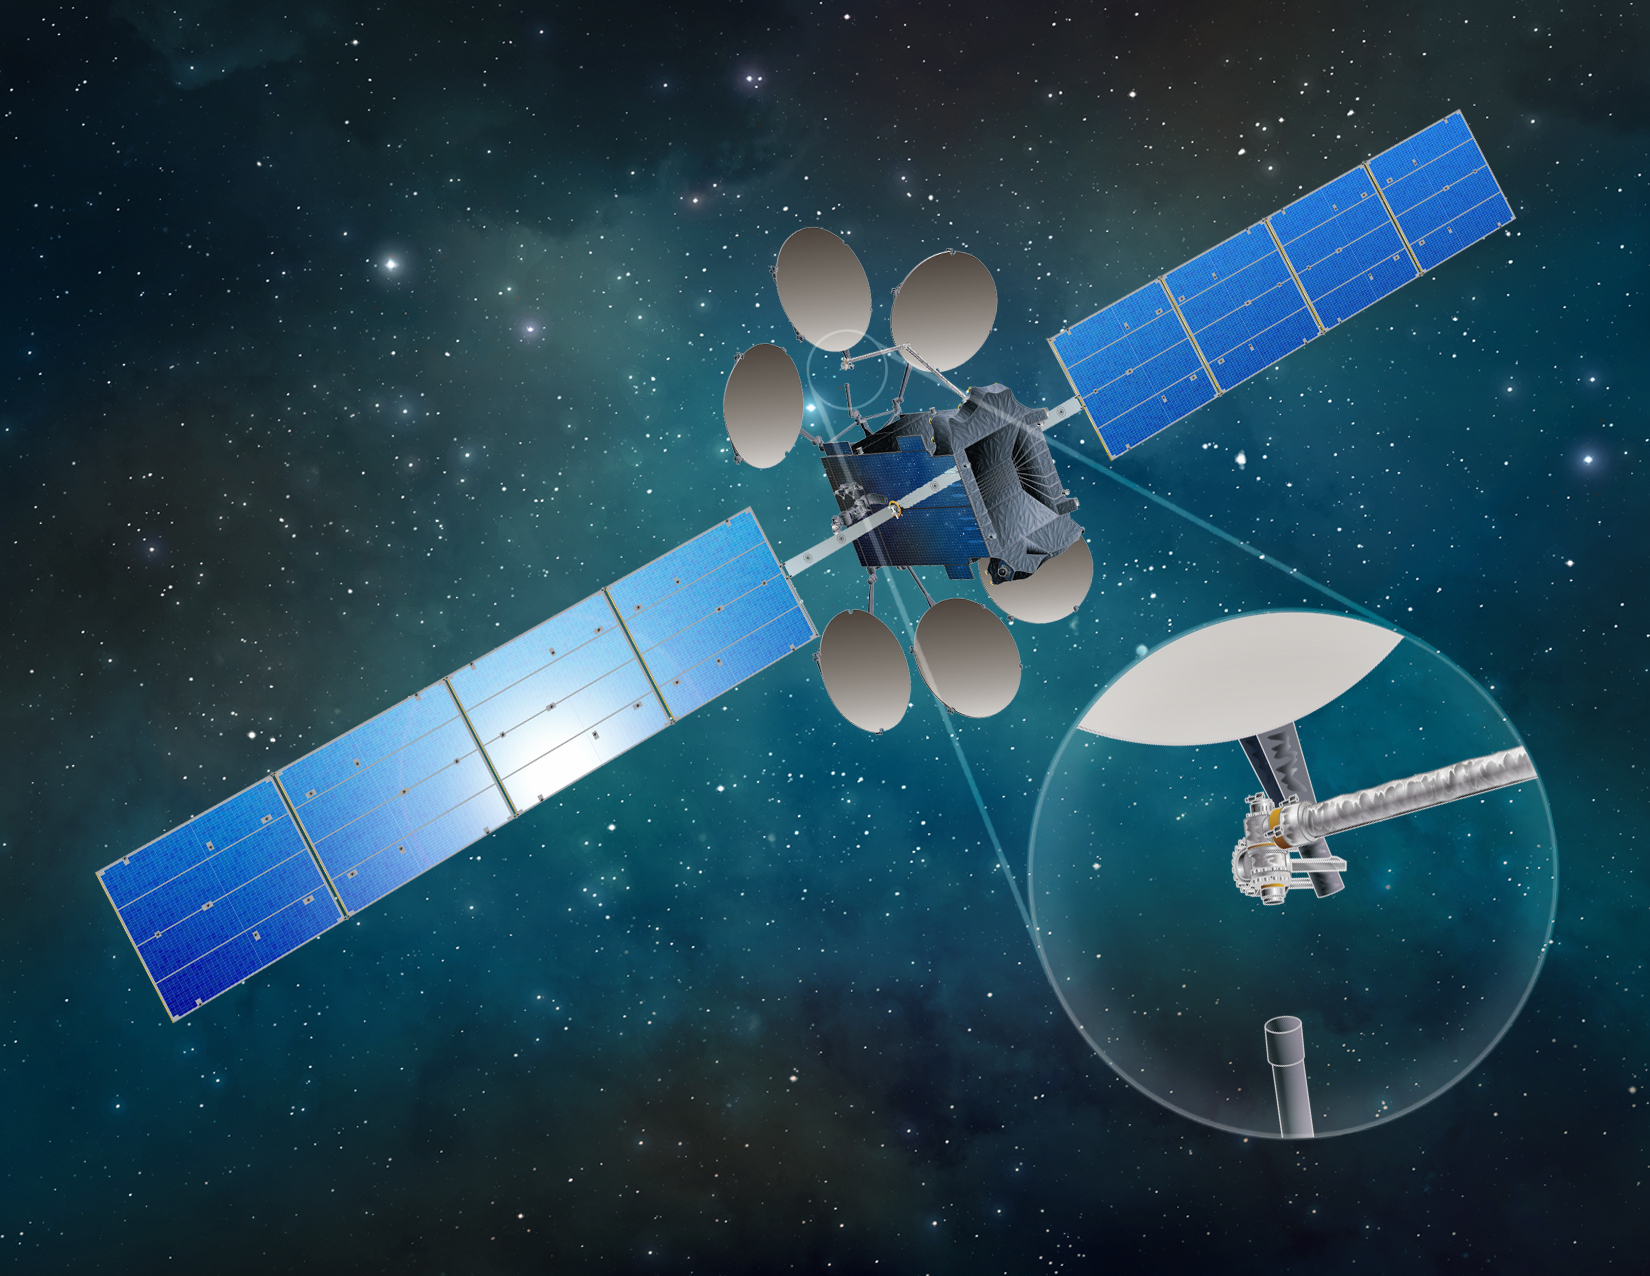 NASA awards SSL with funding for Dragonfly on-orbit satellite